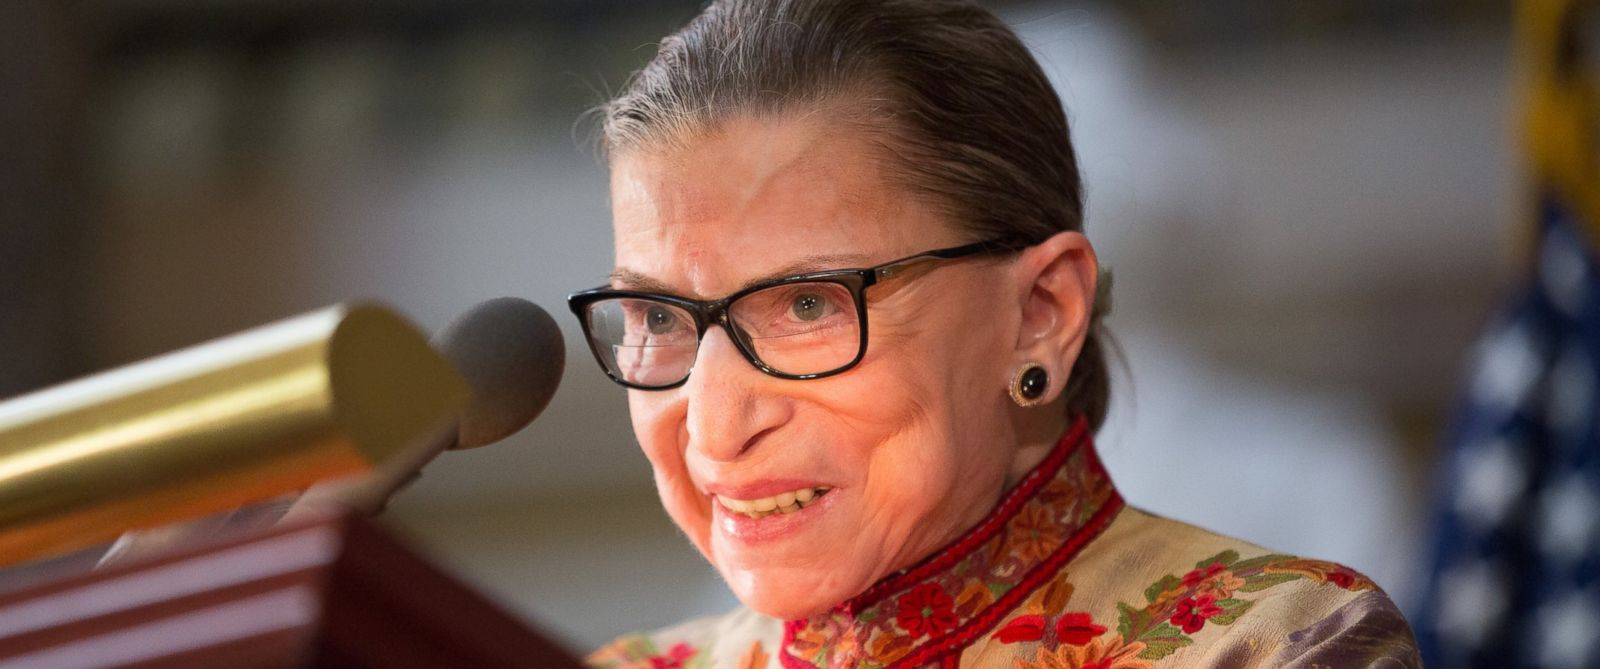 PHOTO: U.S. Supreme Court Justice Ruth Bader Ginsburg speaks at an annual Womens History Month reception hosted by Pelosi in the U.S. capitol building on Capitol Hill in Washington, March 18, 2015.